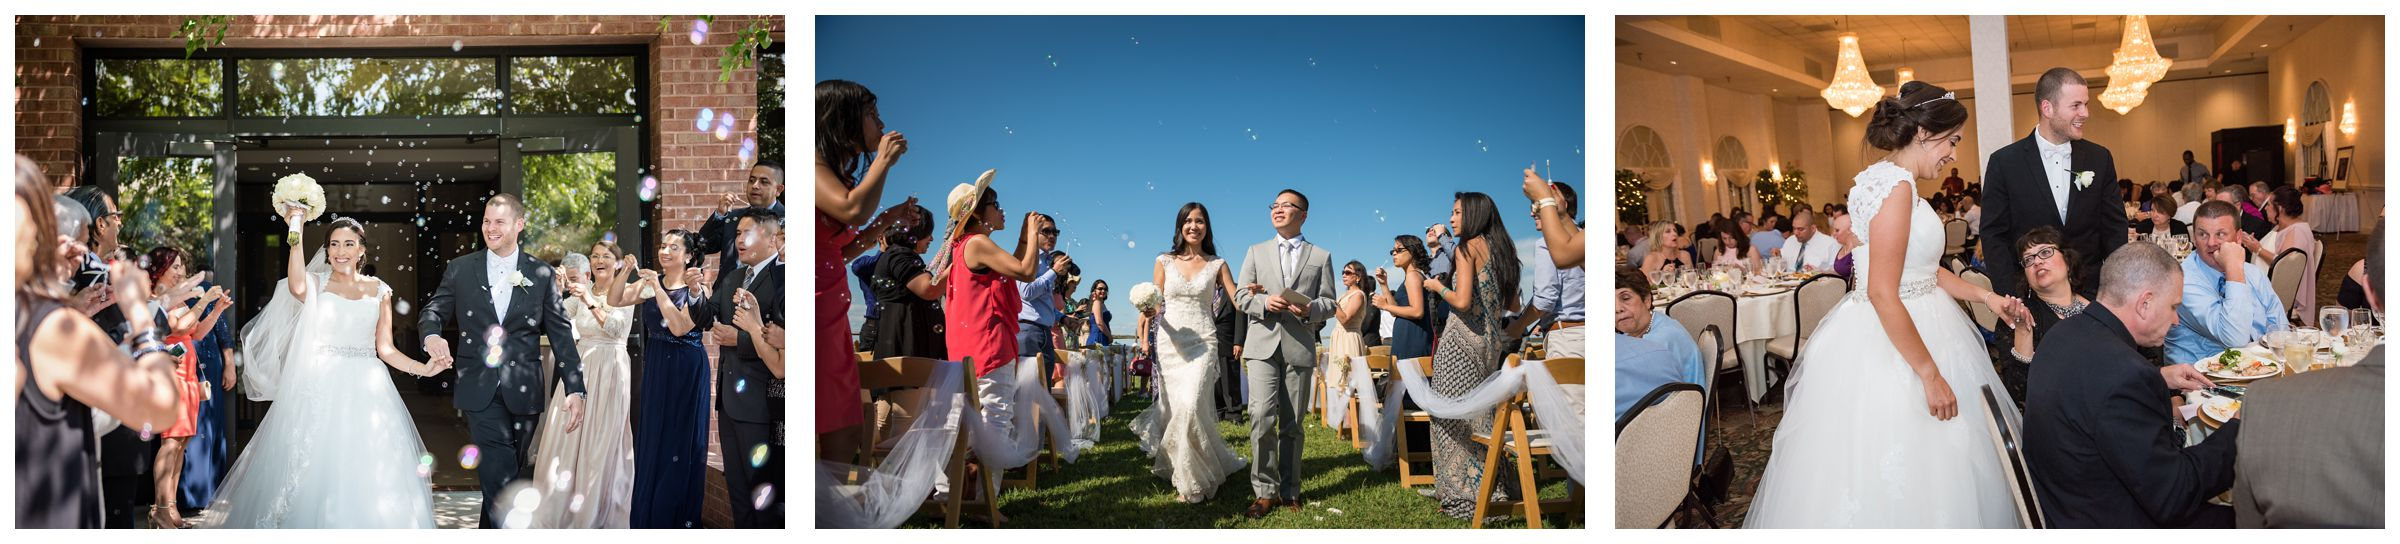 wedding day photography timeline tips Northern Virginia wedding photographer